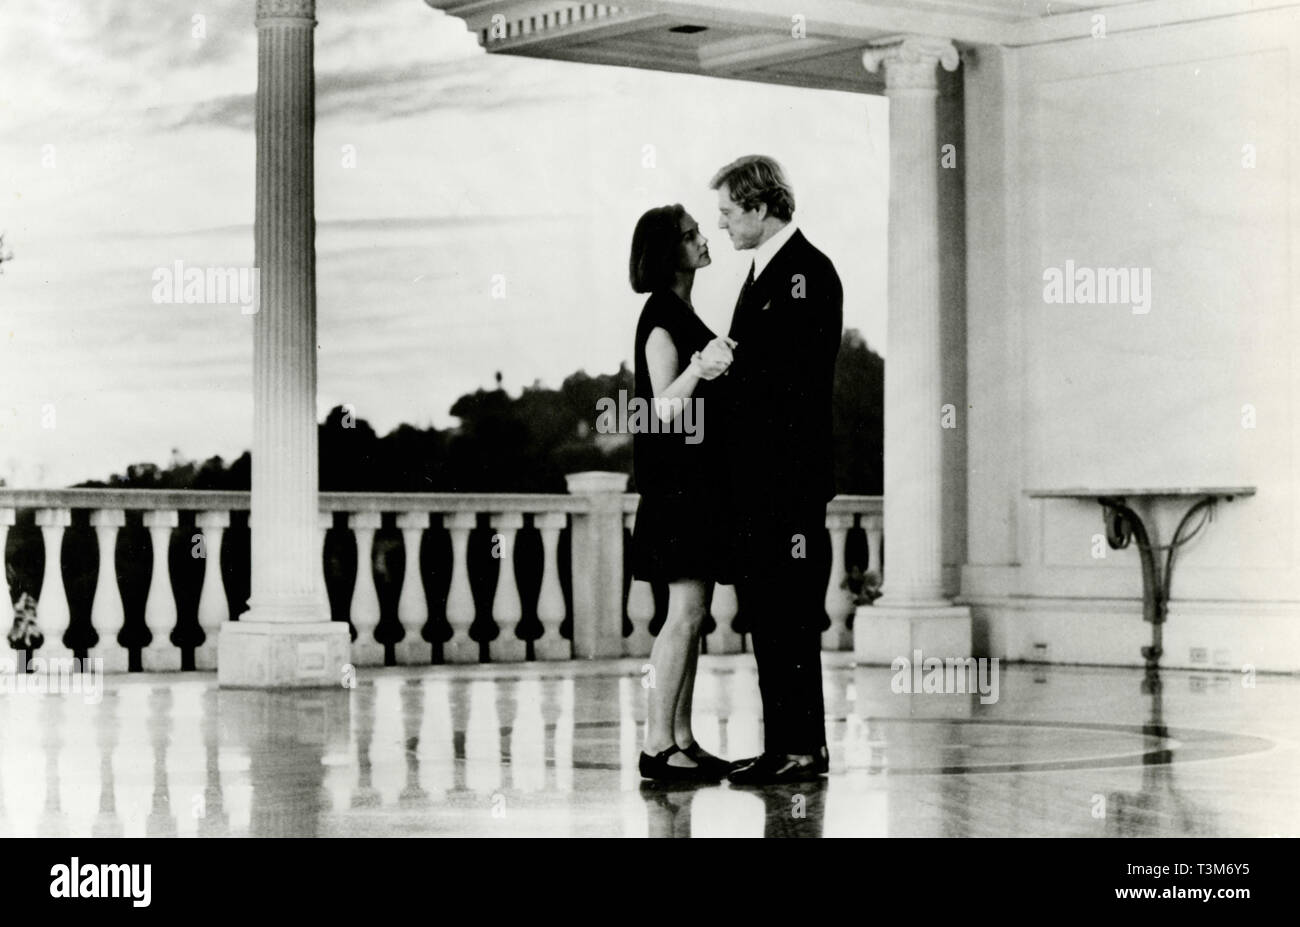 Demi Moore and Robert Redford in the movie Indecent Proposal, 1993 - Stock Image